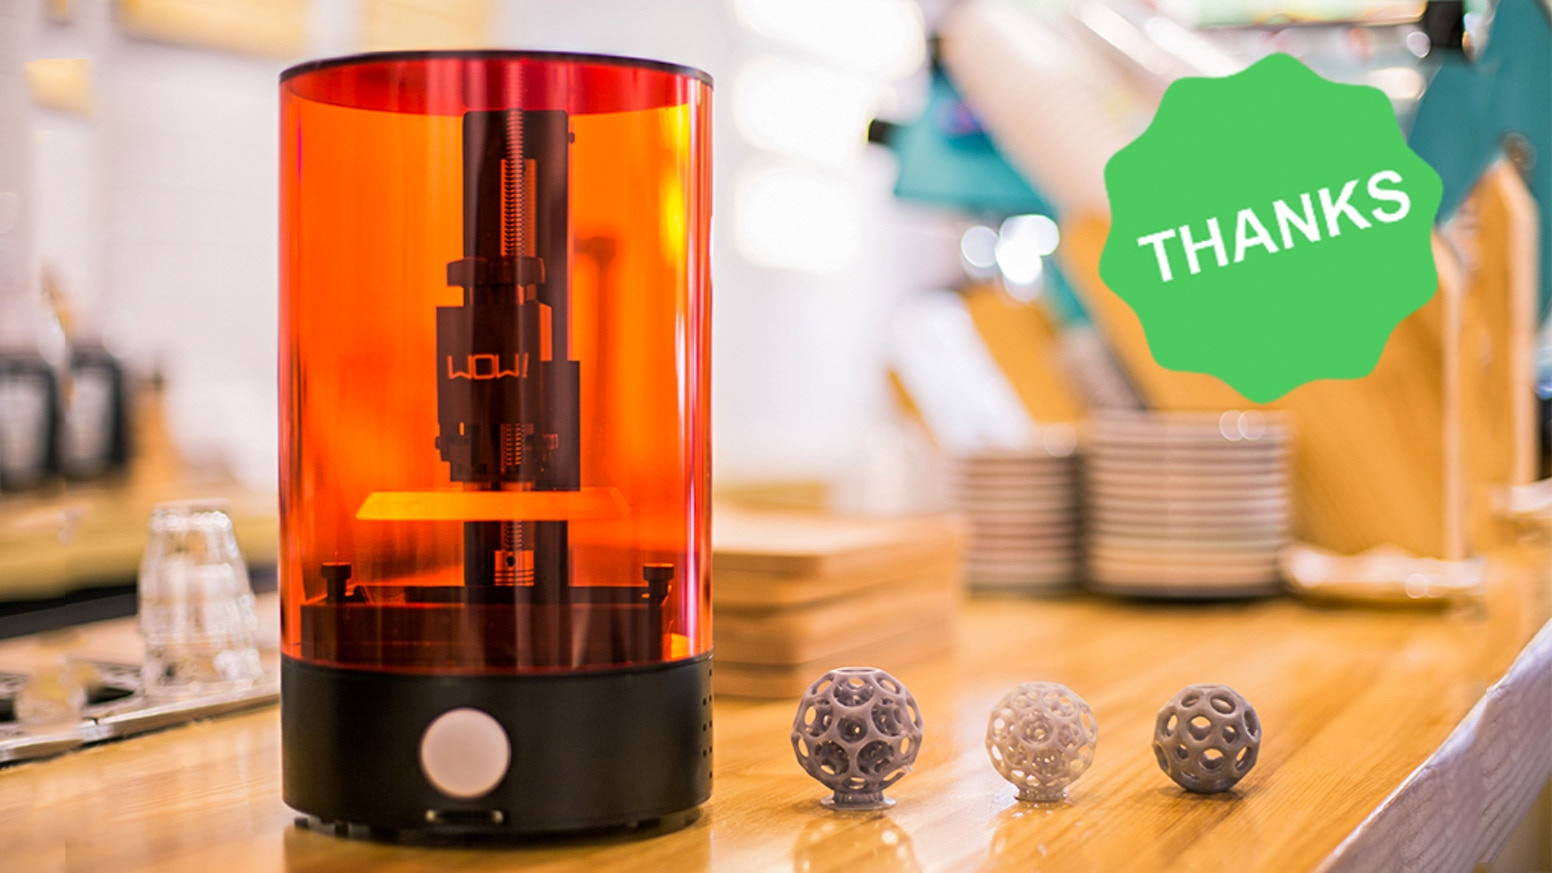 Affordable, Easy-to-use, and High Quality. SparkMaker has everything you need to start SLA printing.